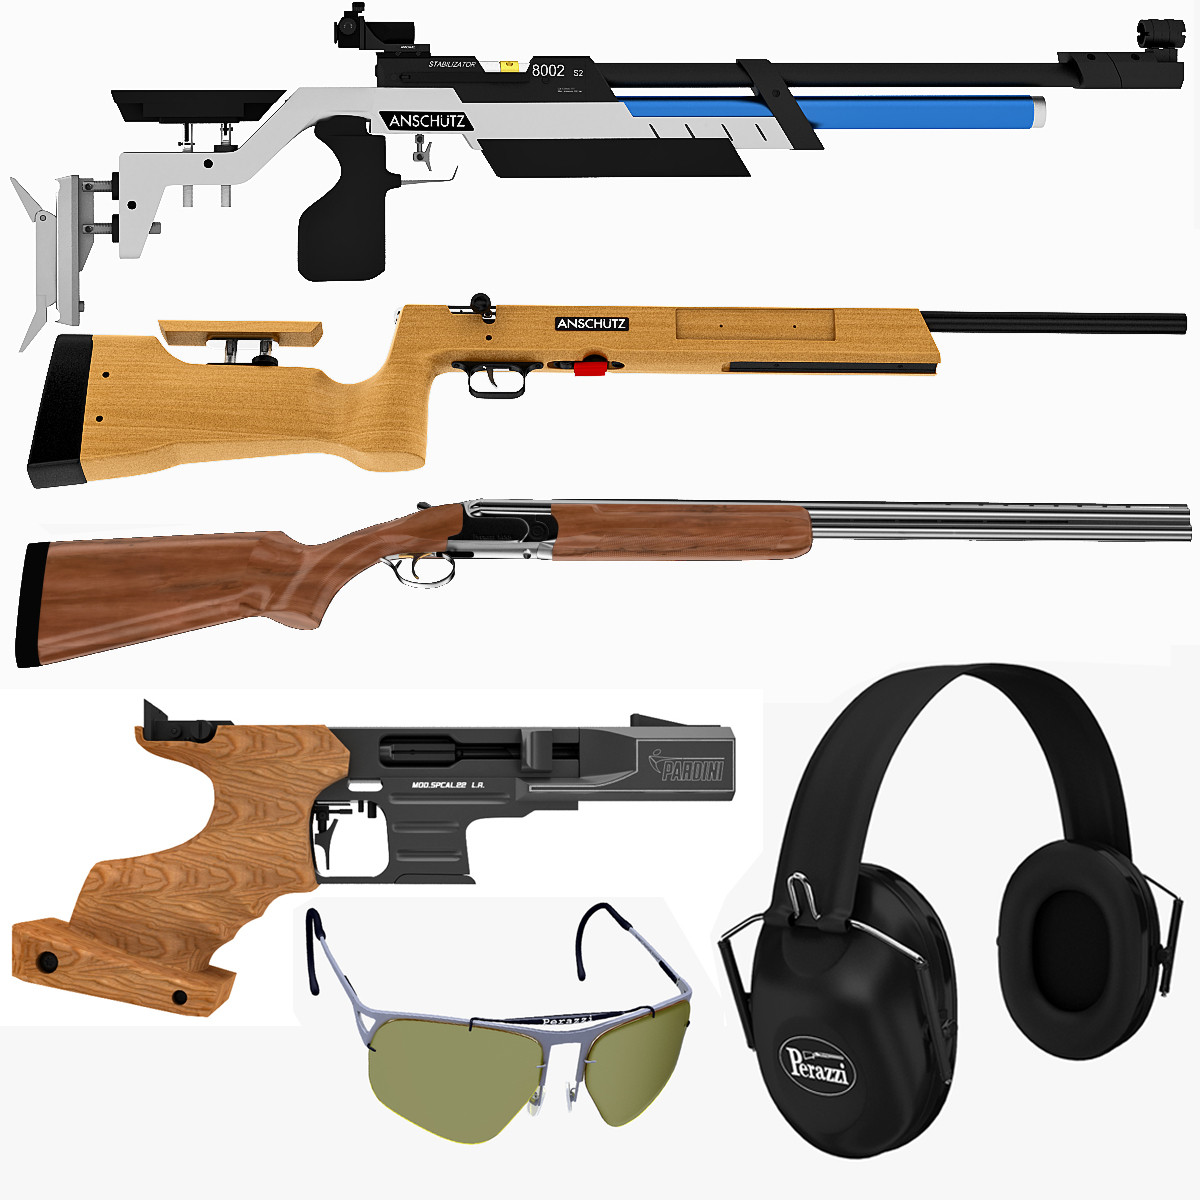 OlympicShootingRifles_Collection_4.jpg